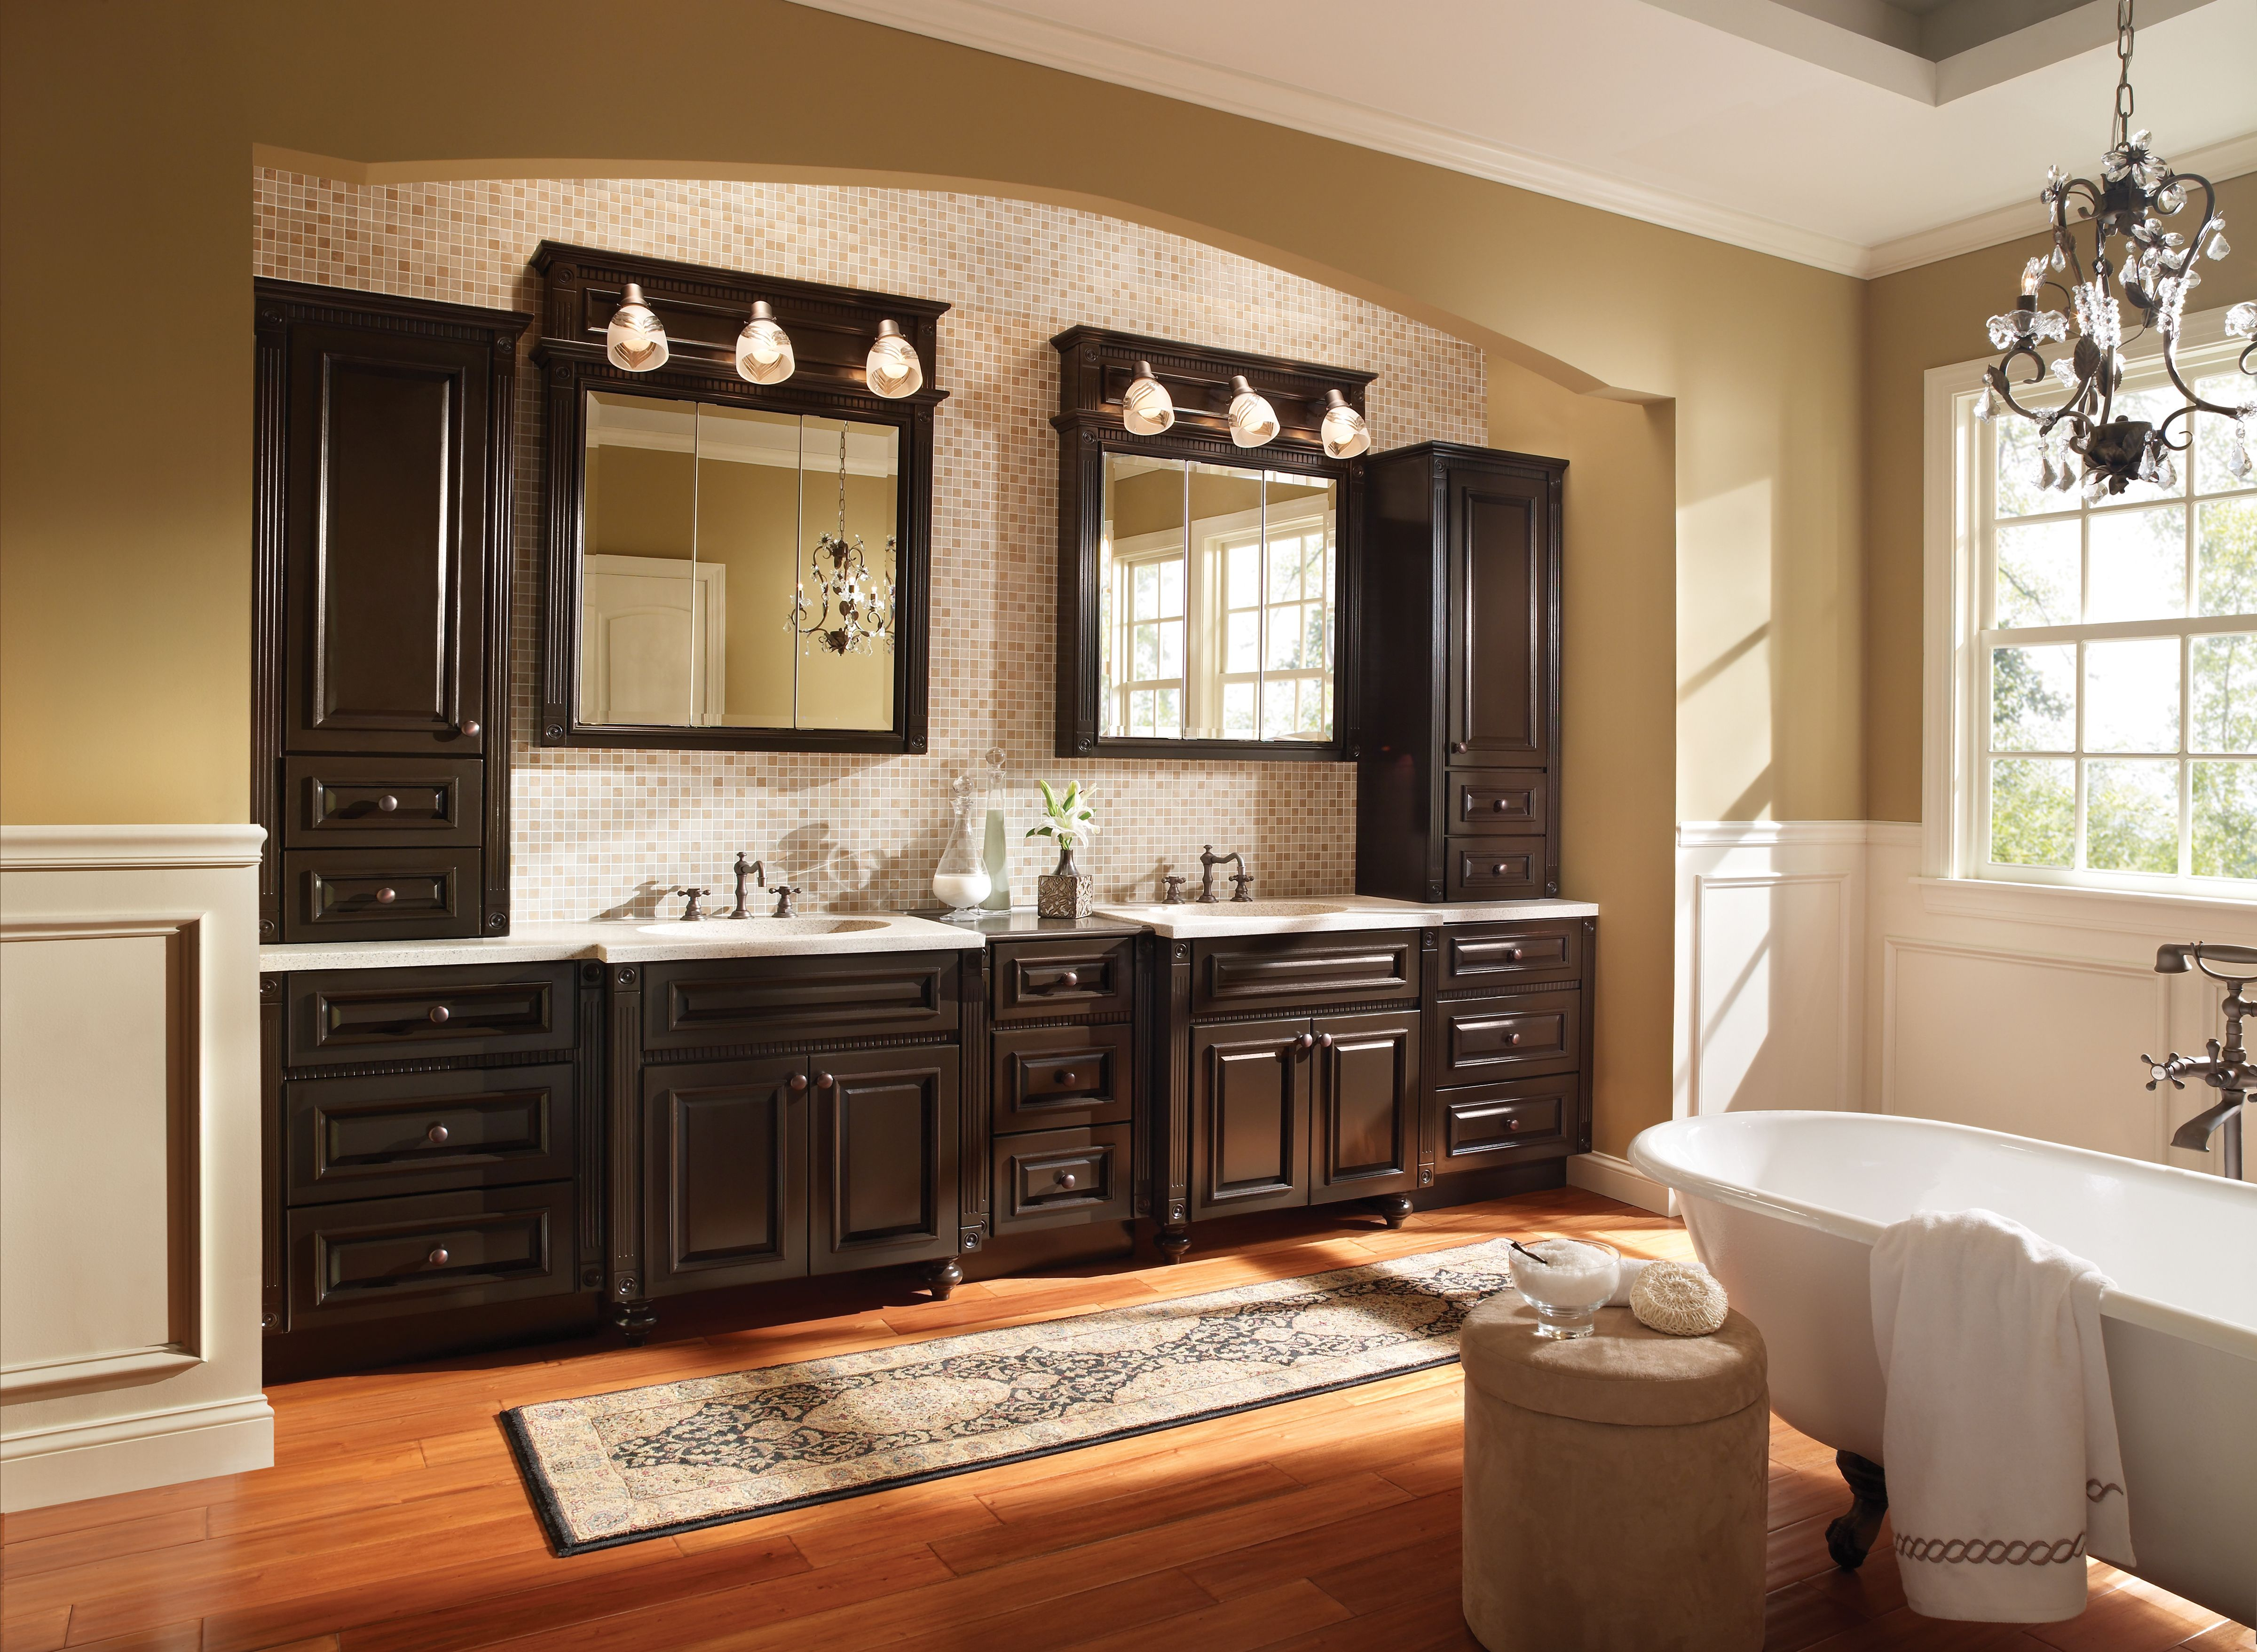 inspiring depo home ideas ny and unique sinks double strasser with native bathroom decor faucets buffalo tops furniture vanities trails for bertch vanity